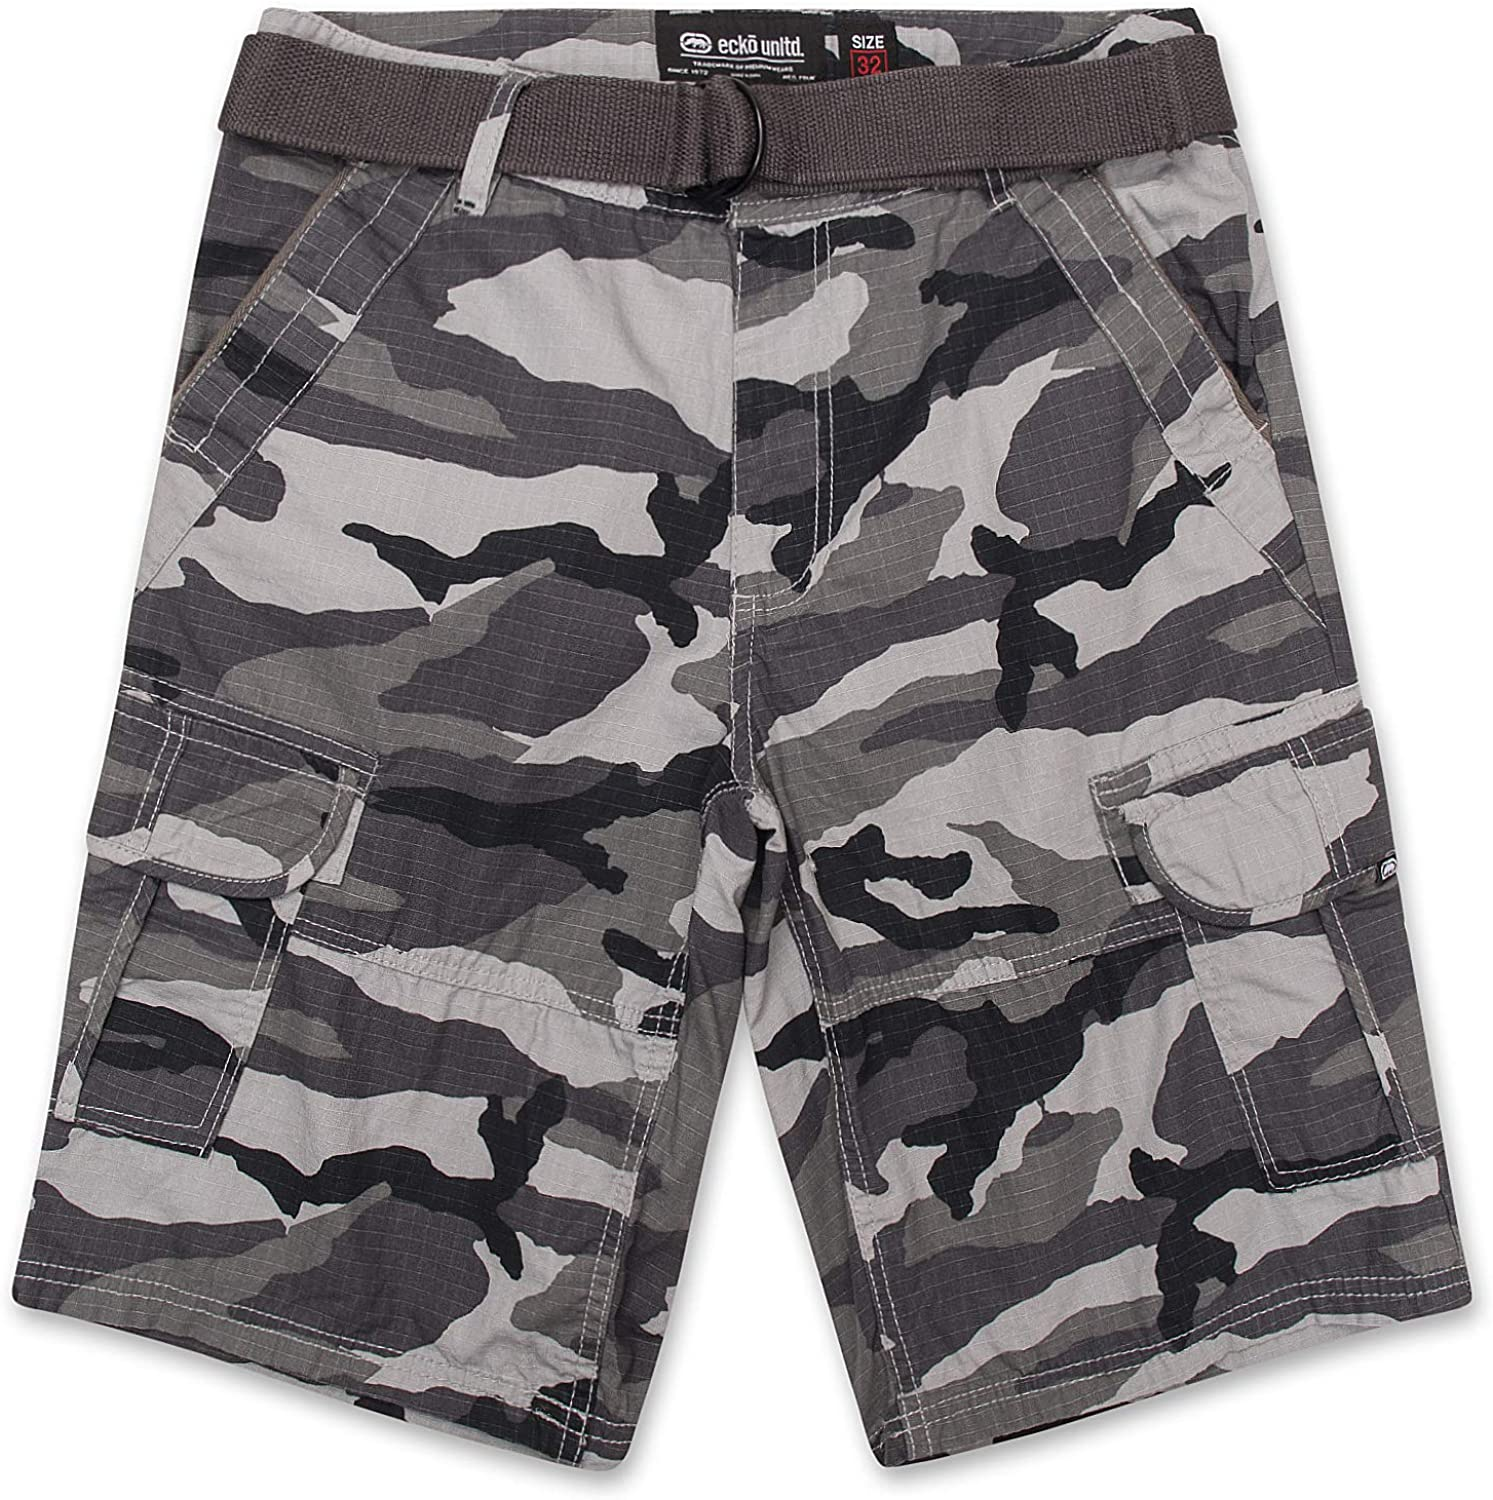 Ecko Unltd. Shorts 25% OFF for Men Big Cargo Ripstop an Safety and trust